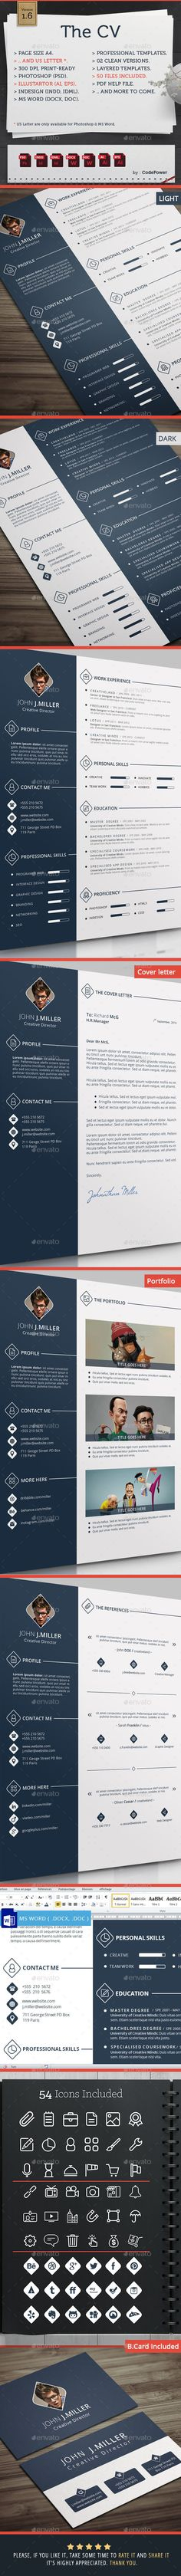 graphic design The #CV - #Resumes #Stationery Download here: https://graphicriver.net/item/the-cv/8241538?ref=alena994